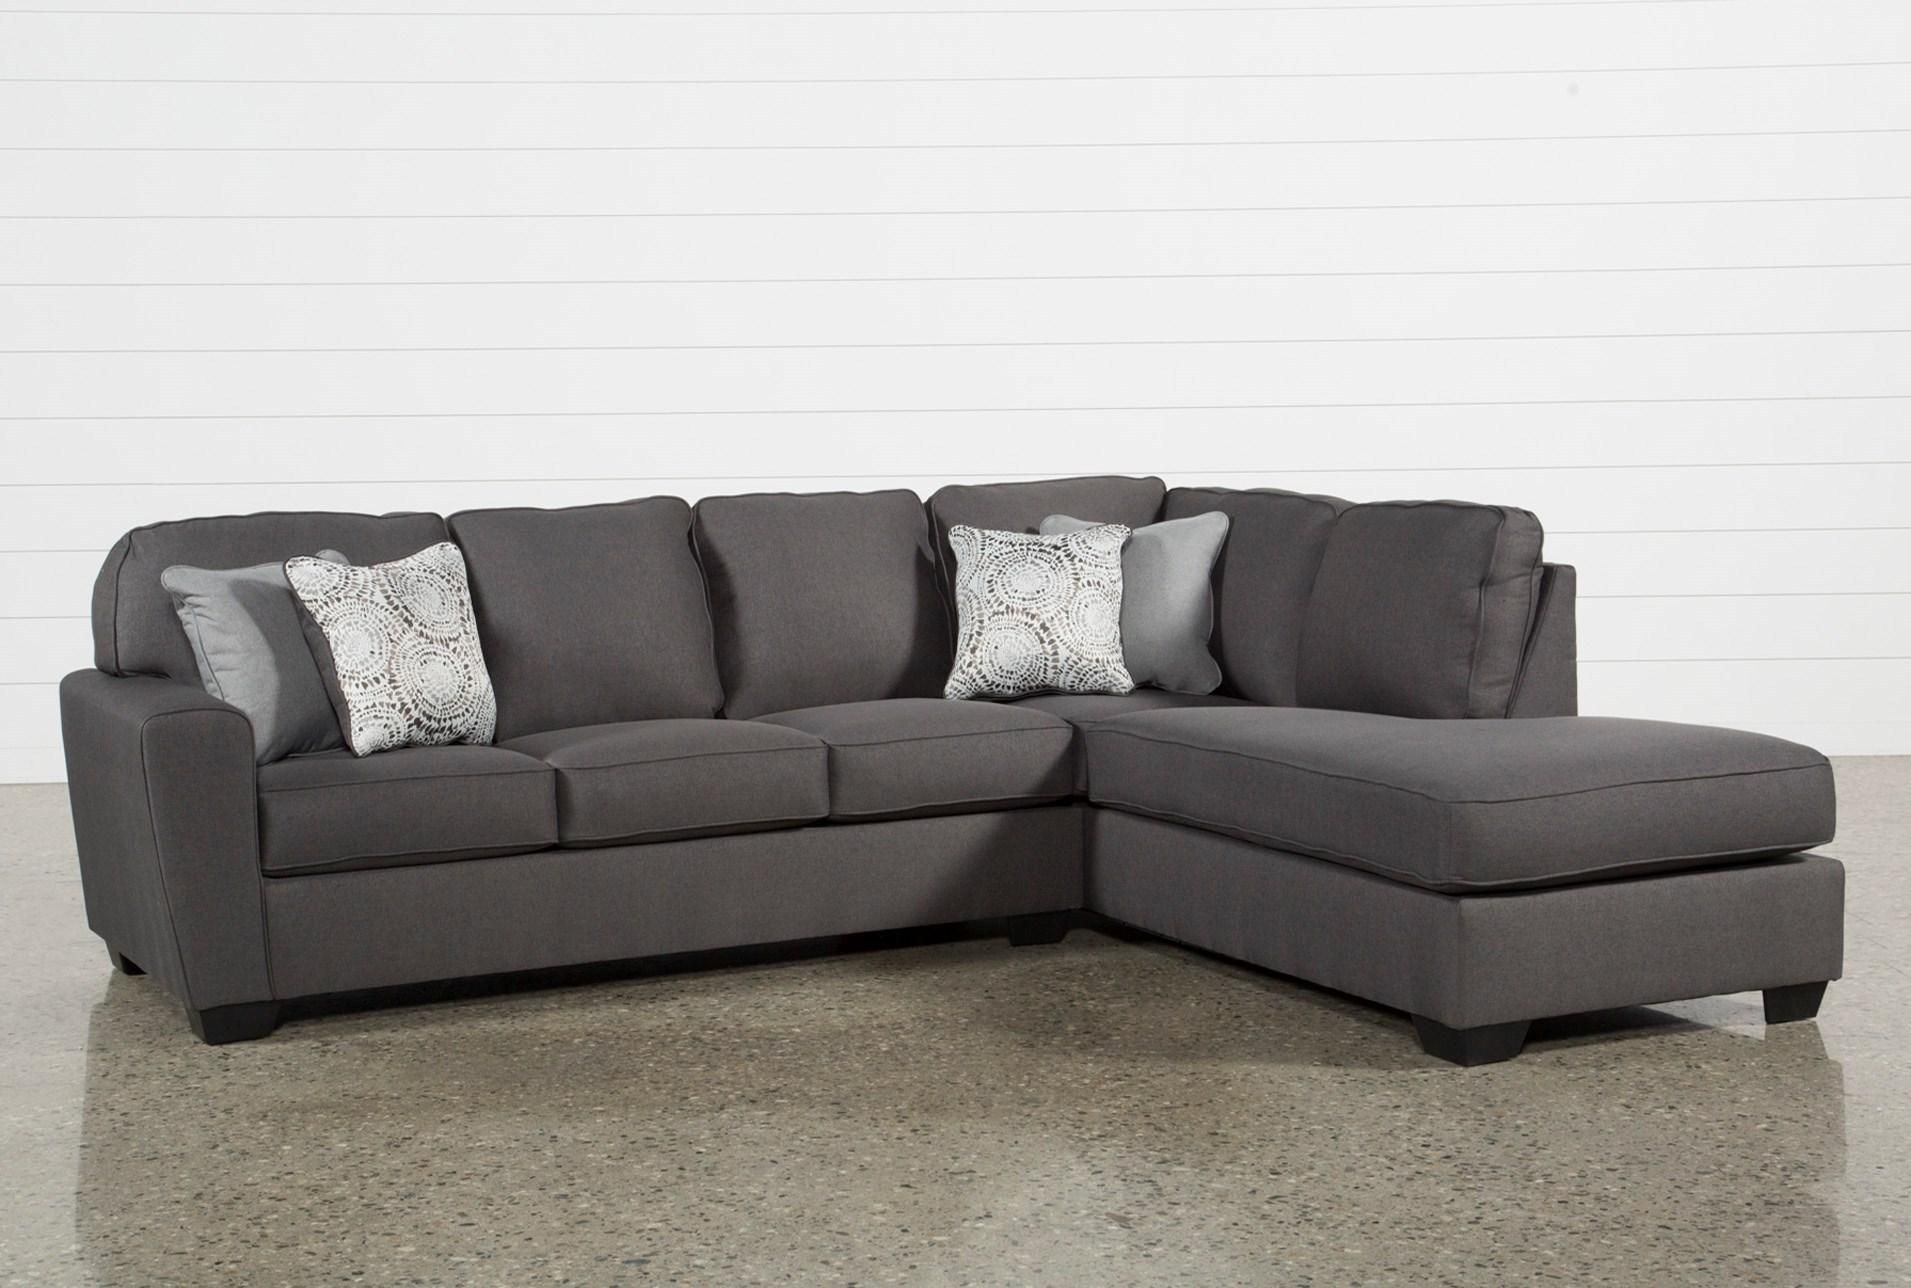 Mcdade Graphite 2 Piece Sectional W/raf Chaise | Livingroom Intended For Arrowmask 2 Piece Sectionals With Sleeper & Right Facing Chaise (Image 17 of 25)